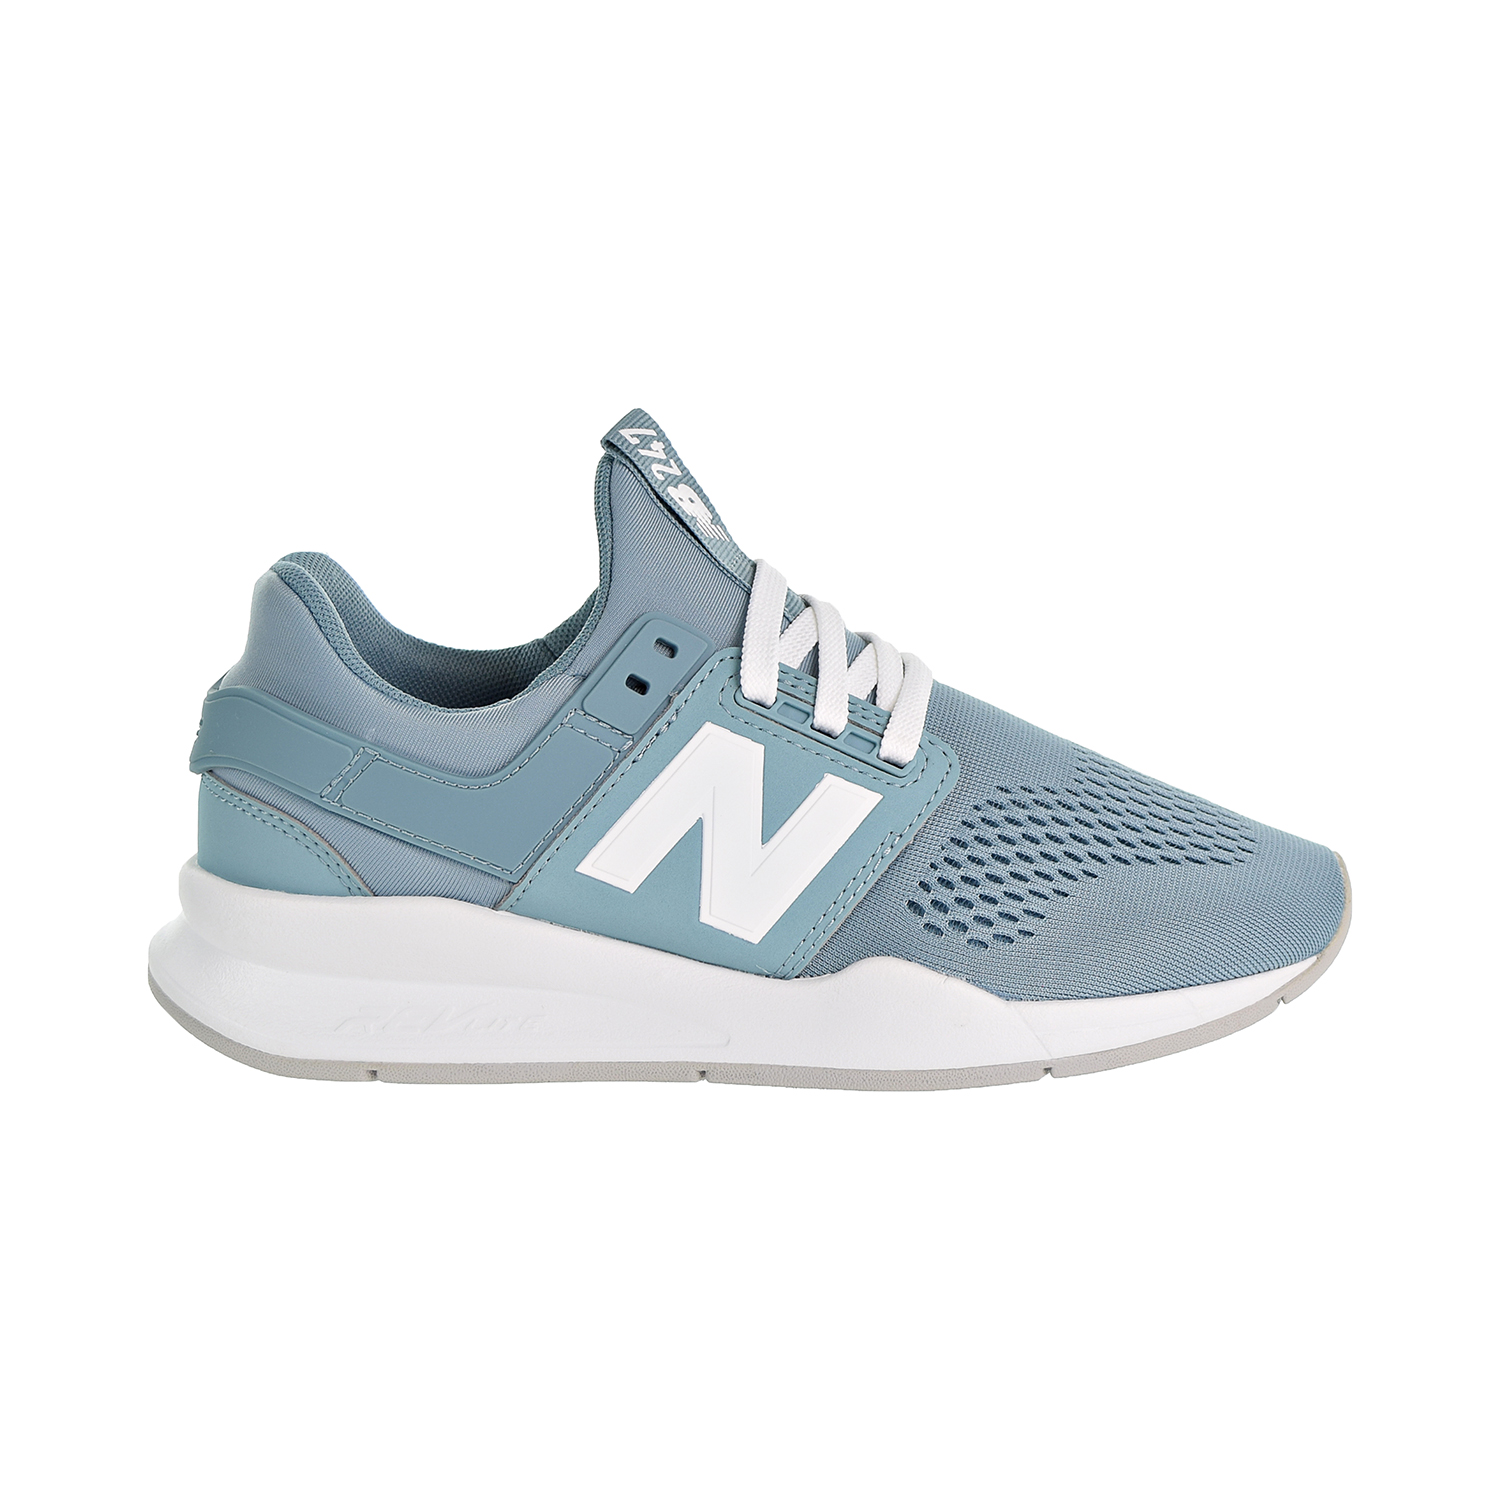 Details about New Balance 247 Women's Shoes Smoke Blue WS247-UF